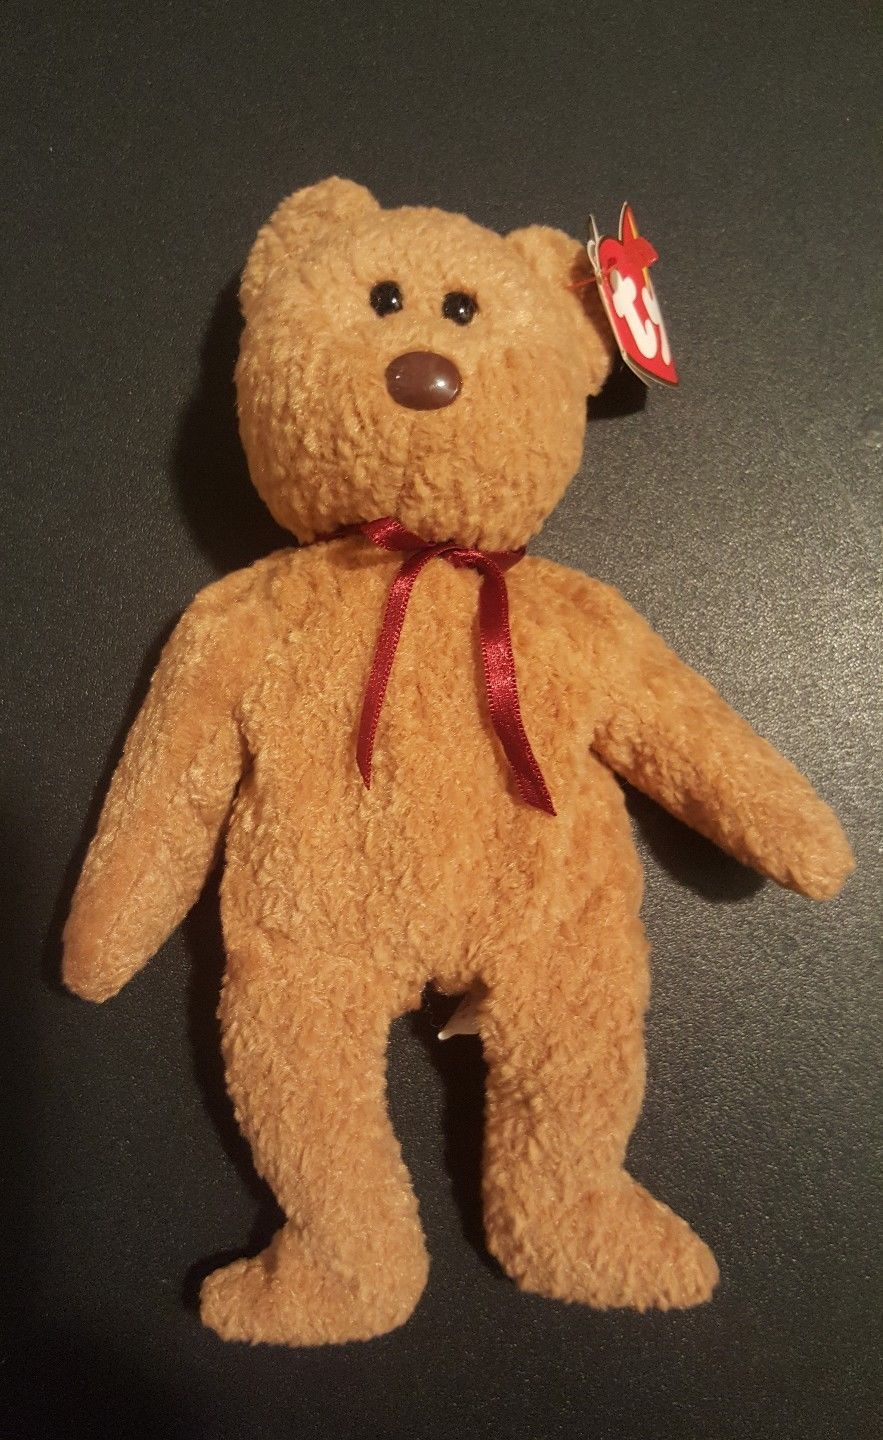 Original Rare 1996 Ty Curly Beanie Baby Mint and 50 similar items. S l1600 97b403eed94